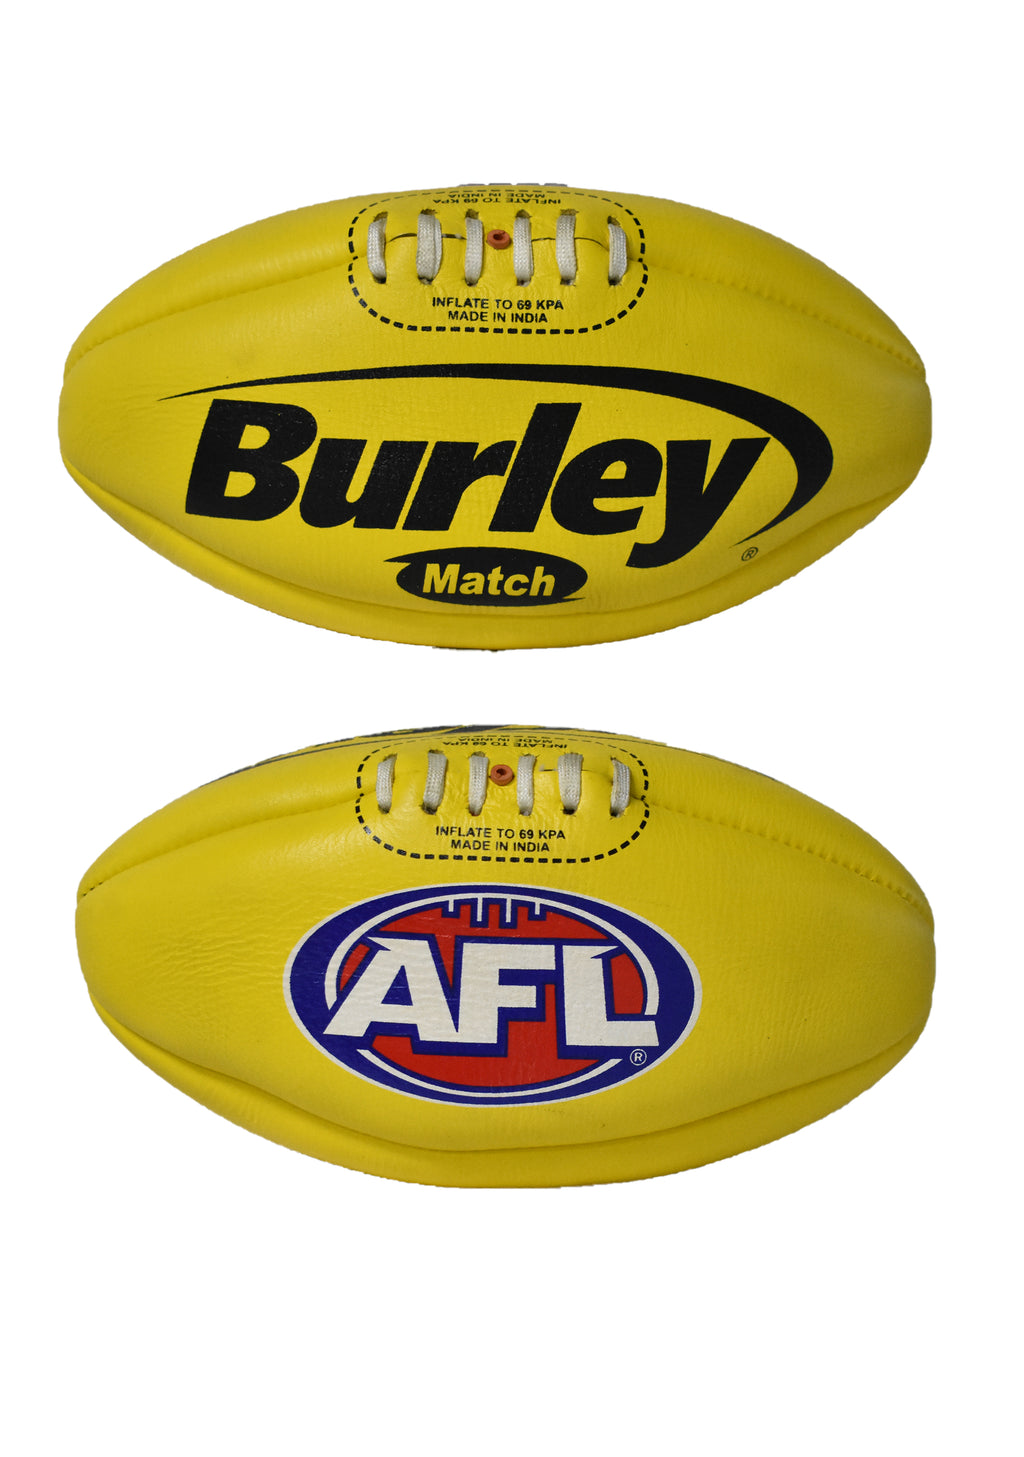 BURLEY YELLOW MATCH FOOTBALL